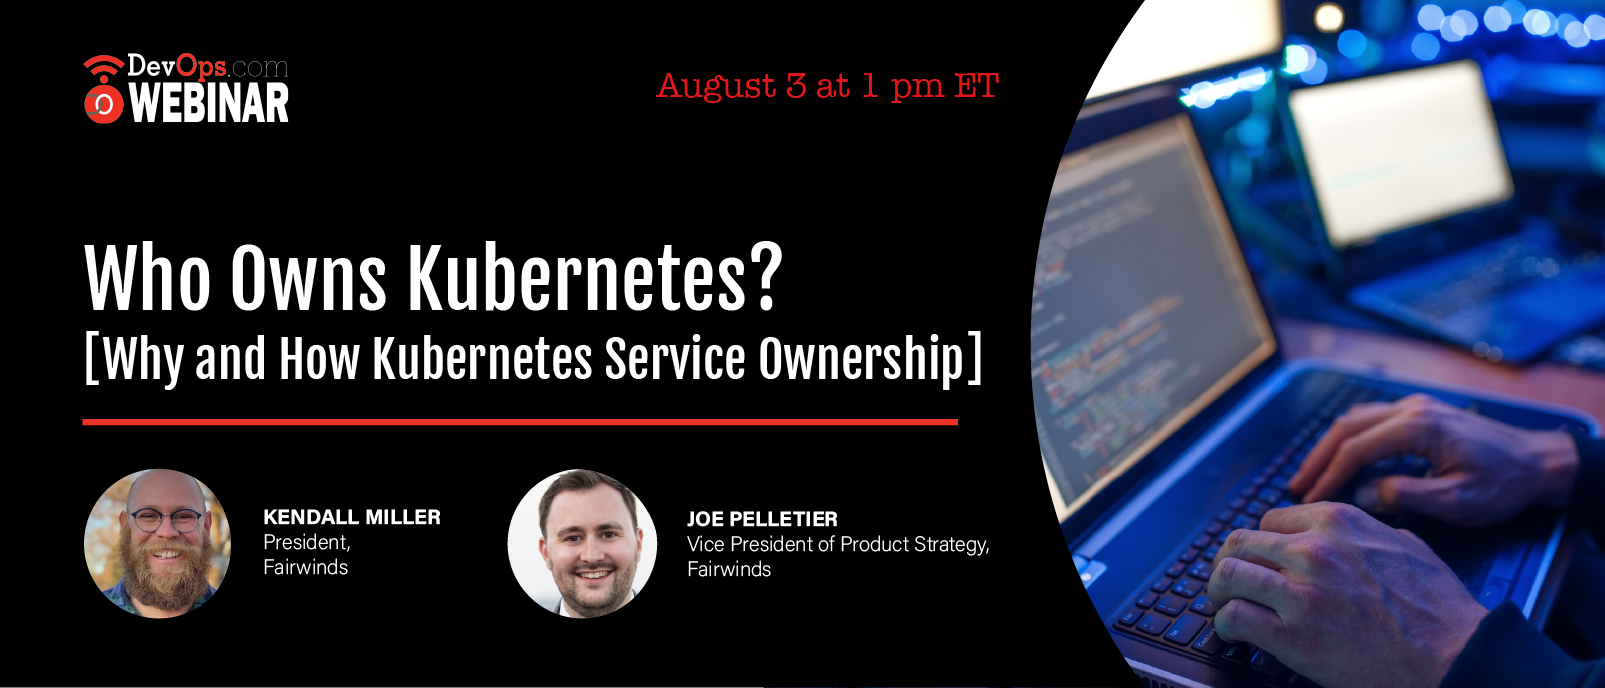 Who Owns Kubernetes? Why and How Kubernetes Service Ownership